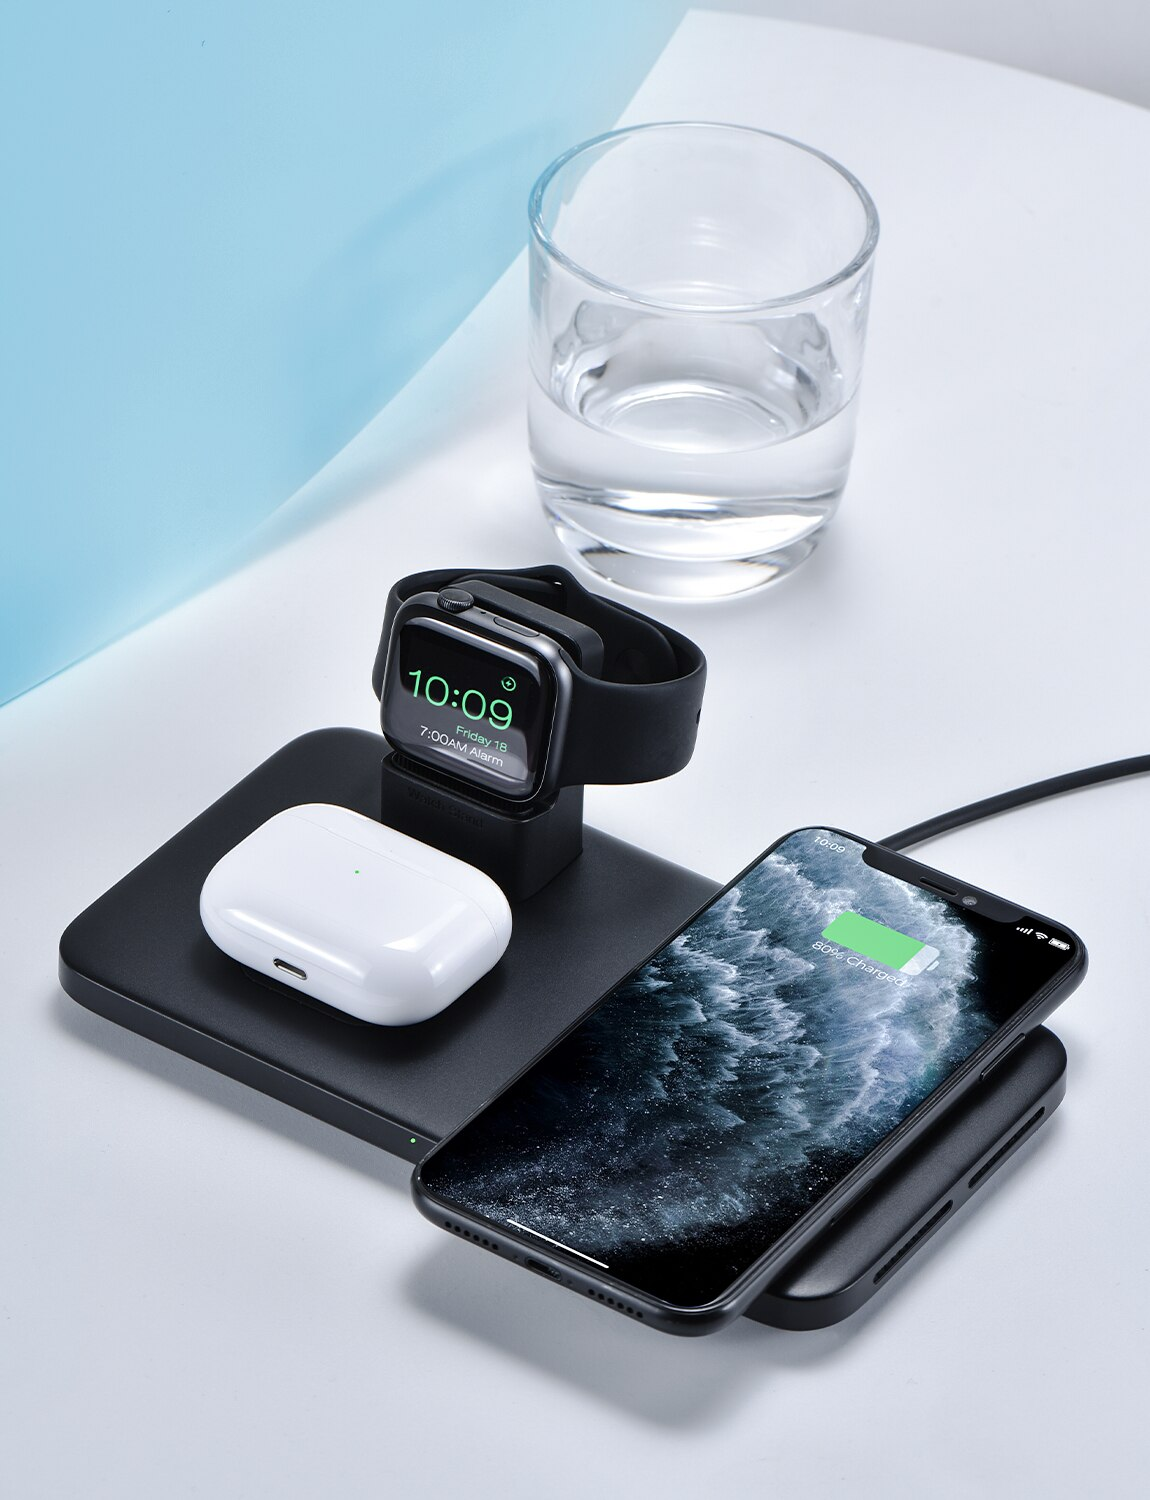 Hf5a831975e7841f887bf6601d0a3f8b9U - Seneo PA202 Wireless Charger 3 in 1 for iPhone 12 11 Wireless Charging Pad for AirPods Pro 2 Charging Dock for iWatch 5 4 3 2